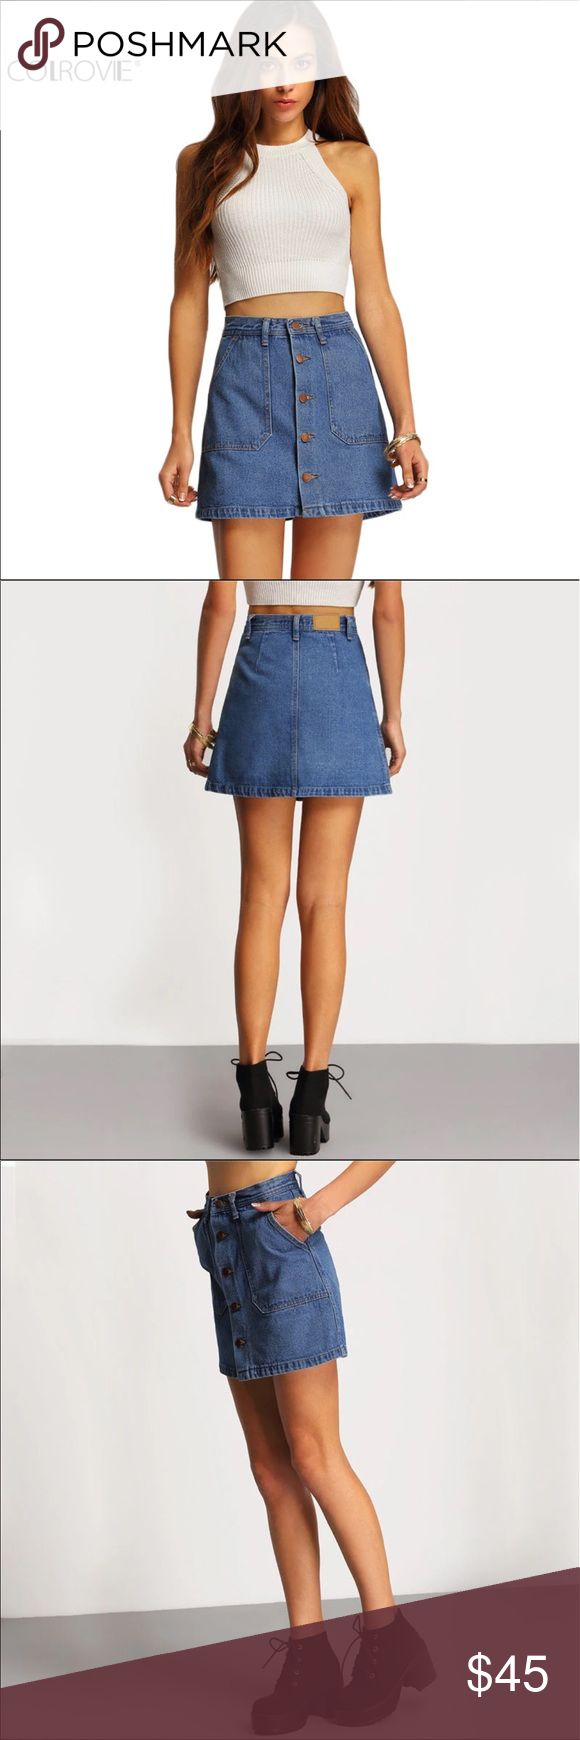 ❤️Sale❤️High waisted jean skirt Woman's high waisted jean skirt. Perfect for a summer day, and goes with pretty much any top! Skirts High Low